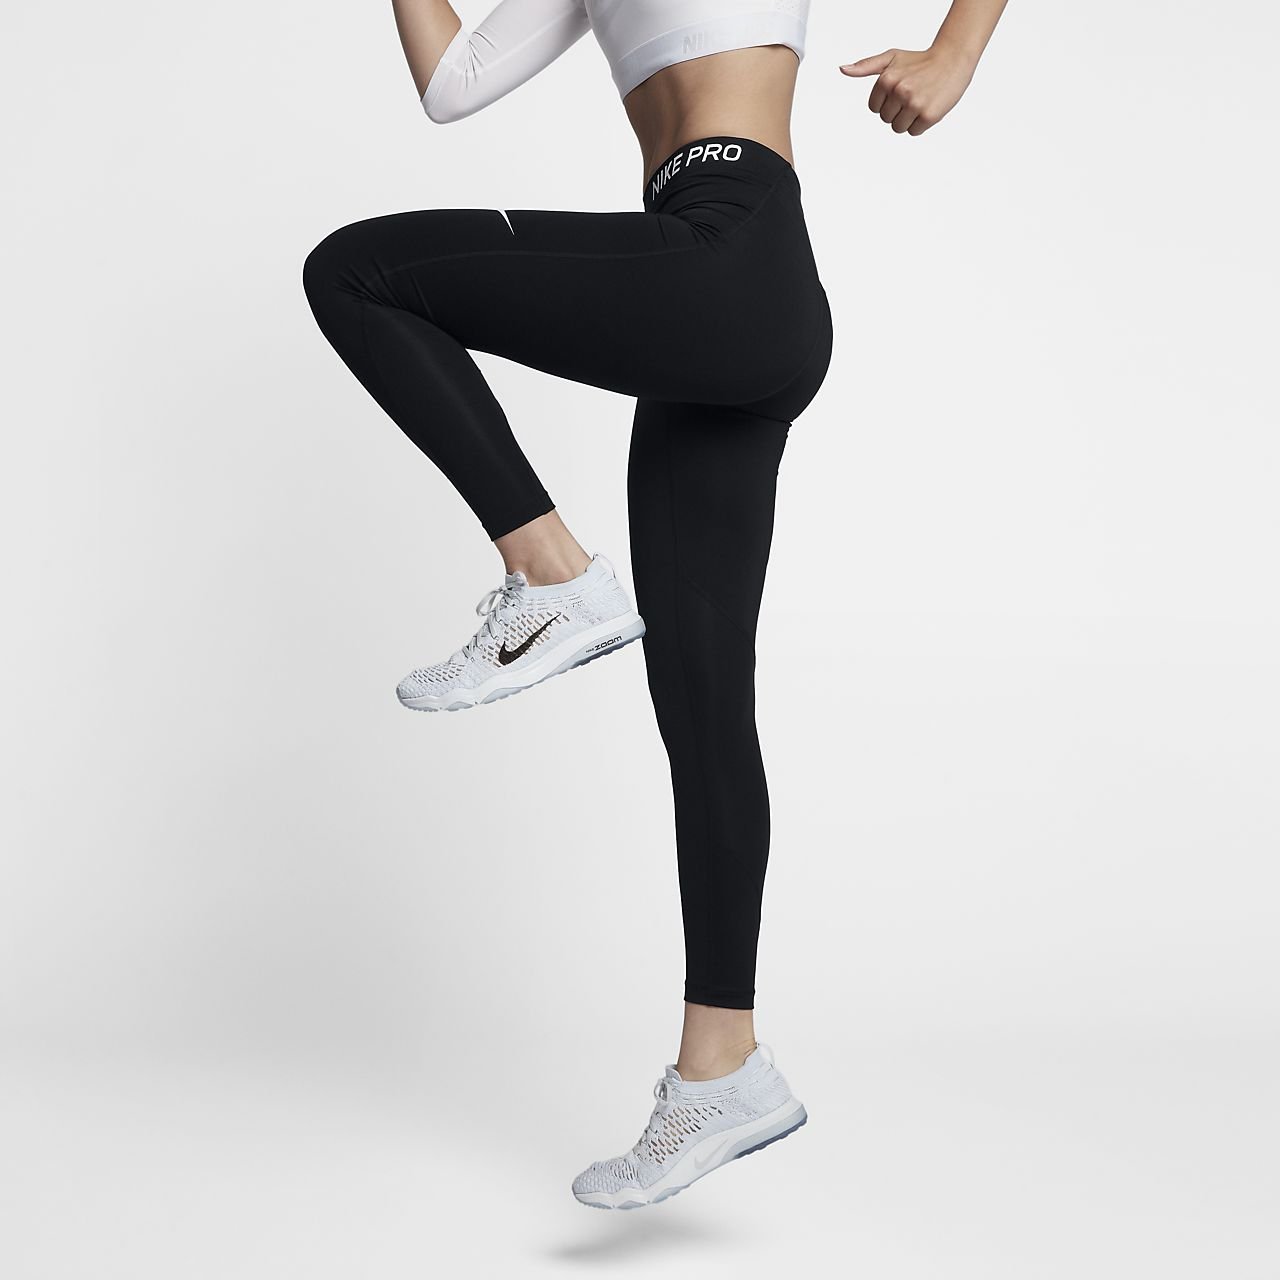 new product 5d773 b8c99 ... Nike Pro Women s Mid-Rise Training Tights